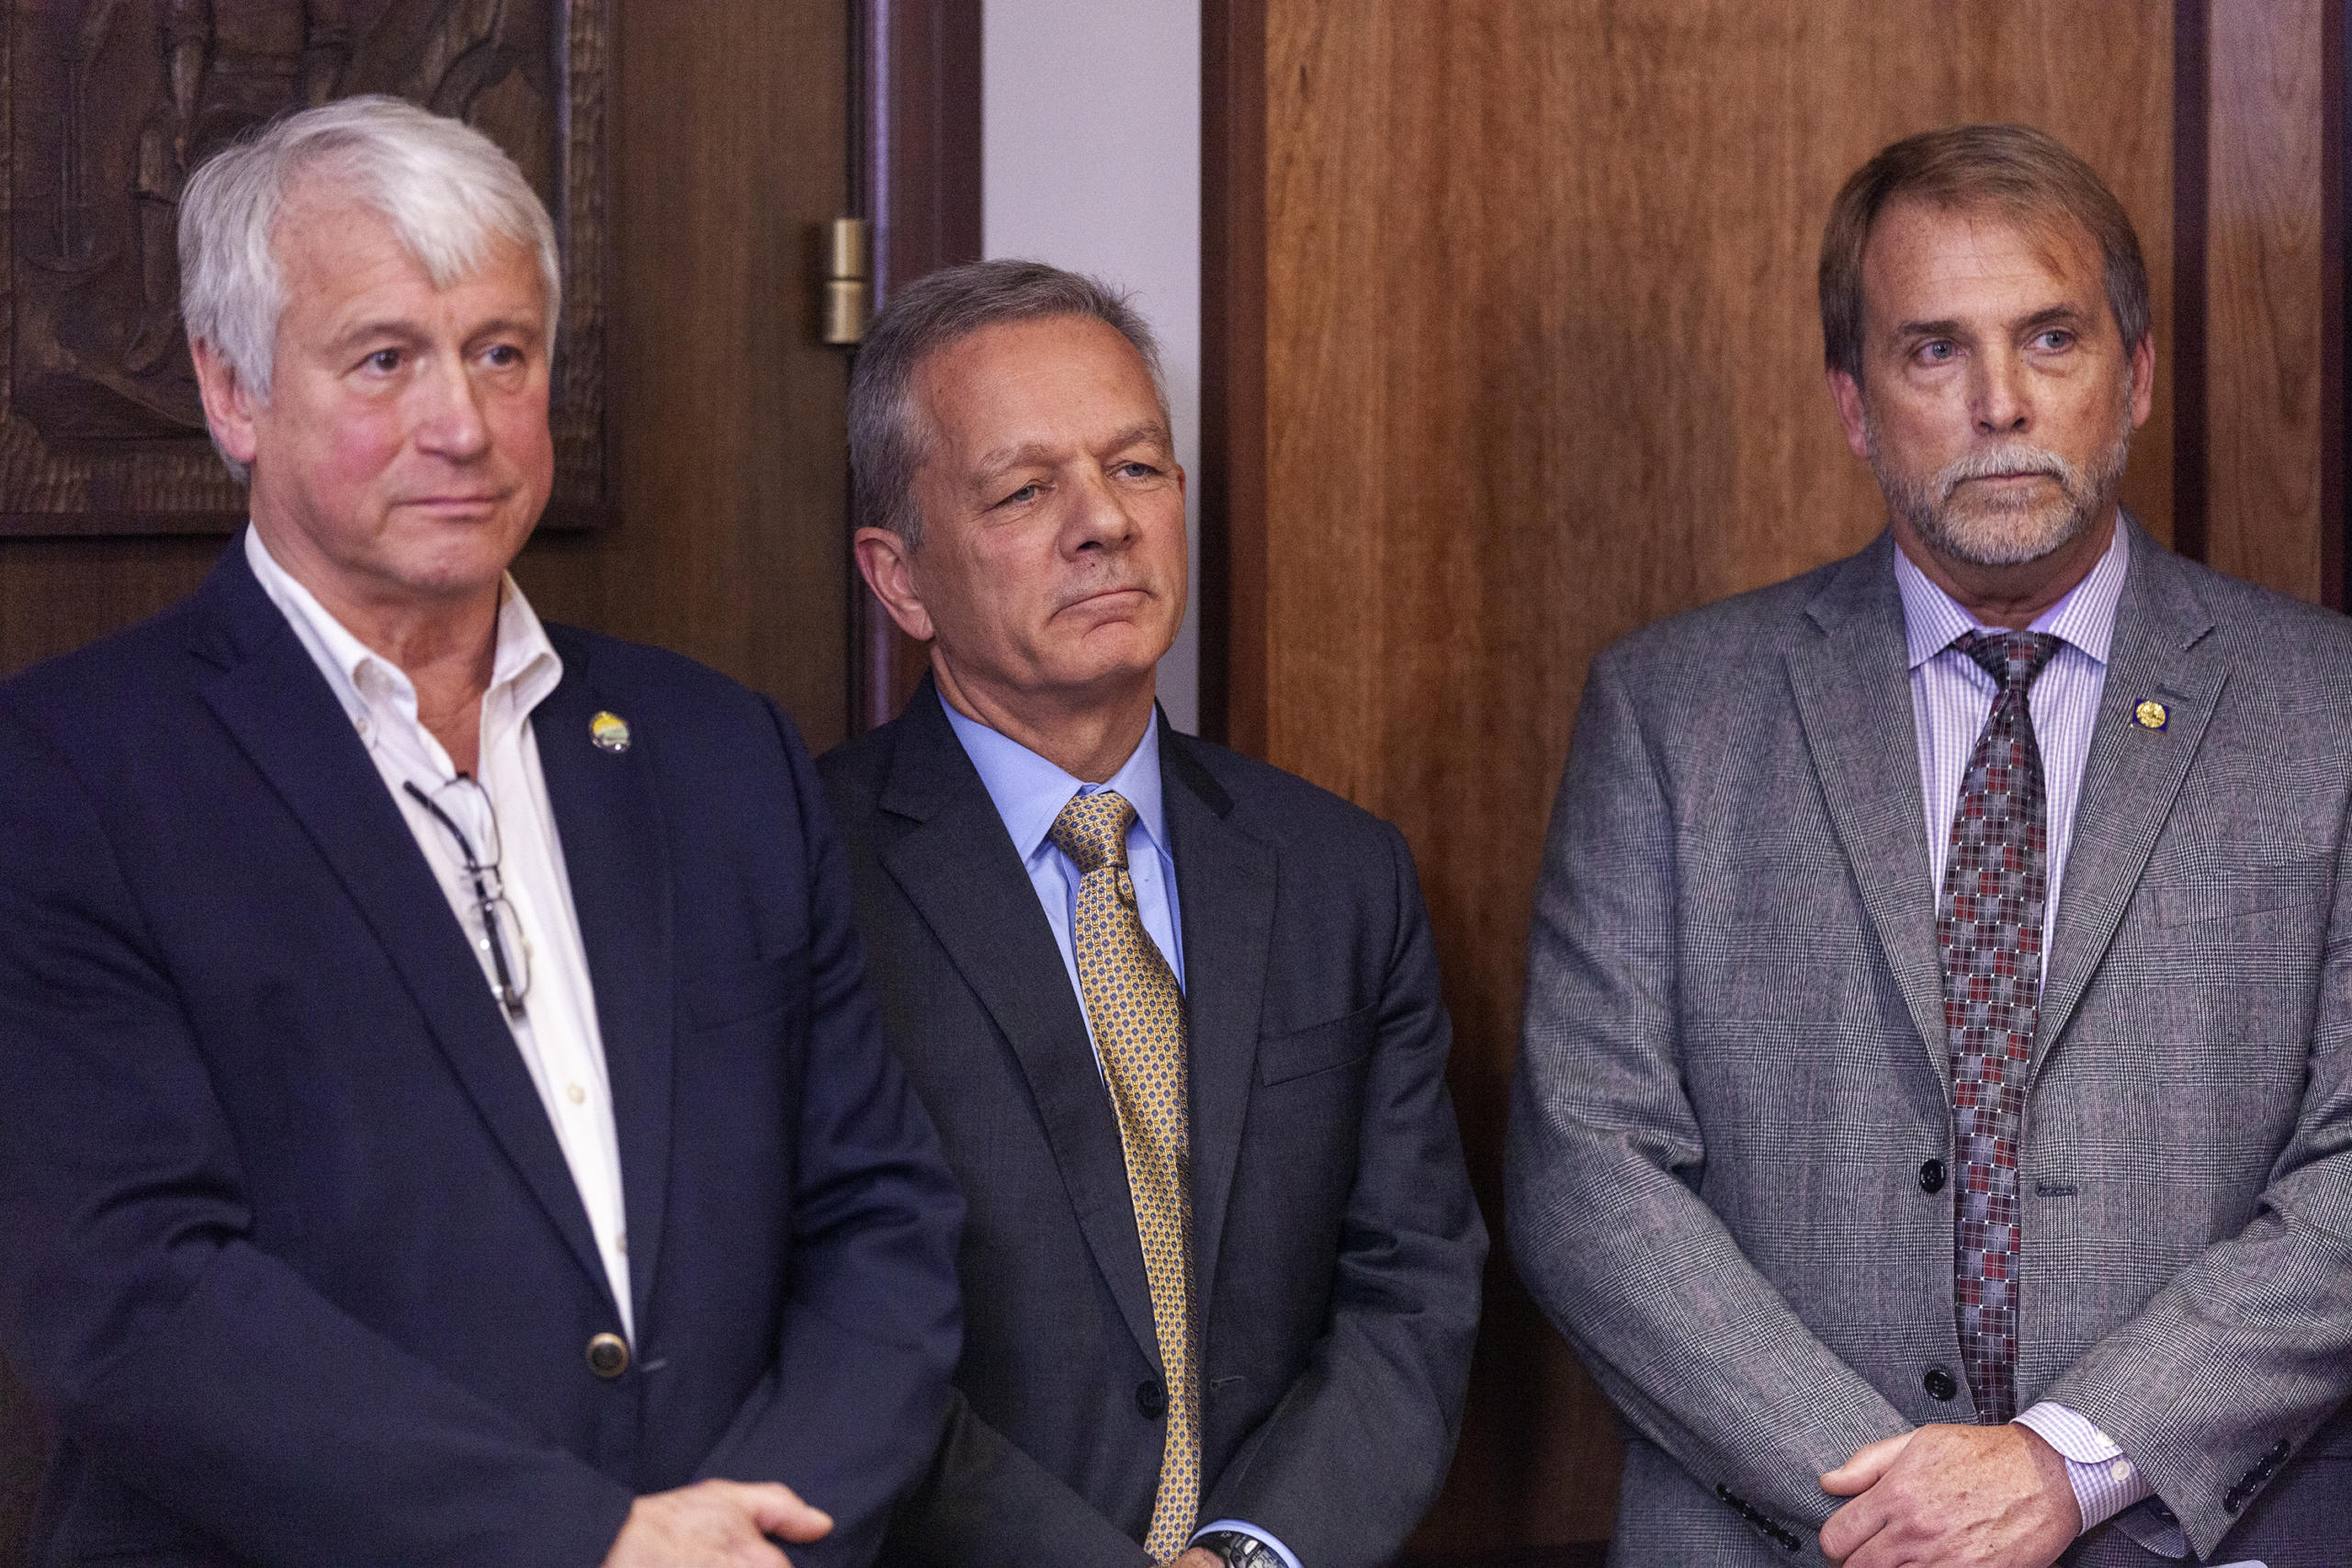 Department of Transportation and Public Facilities Commissioner John MacKinnon, Gov. Mike Dunleavy's Chief of Staff Ben Stevens, and Senior Policy Advisor Brett Huber watch a press conference unveiling Dunleavy's budget proposal on Wednesday, December 11, 2019, at the Capitol in Juneau, Alaska. (Photo by Rashah McChesney/KTOO)